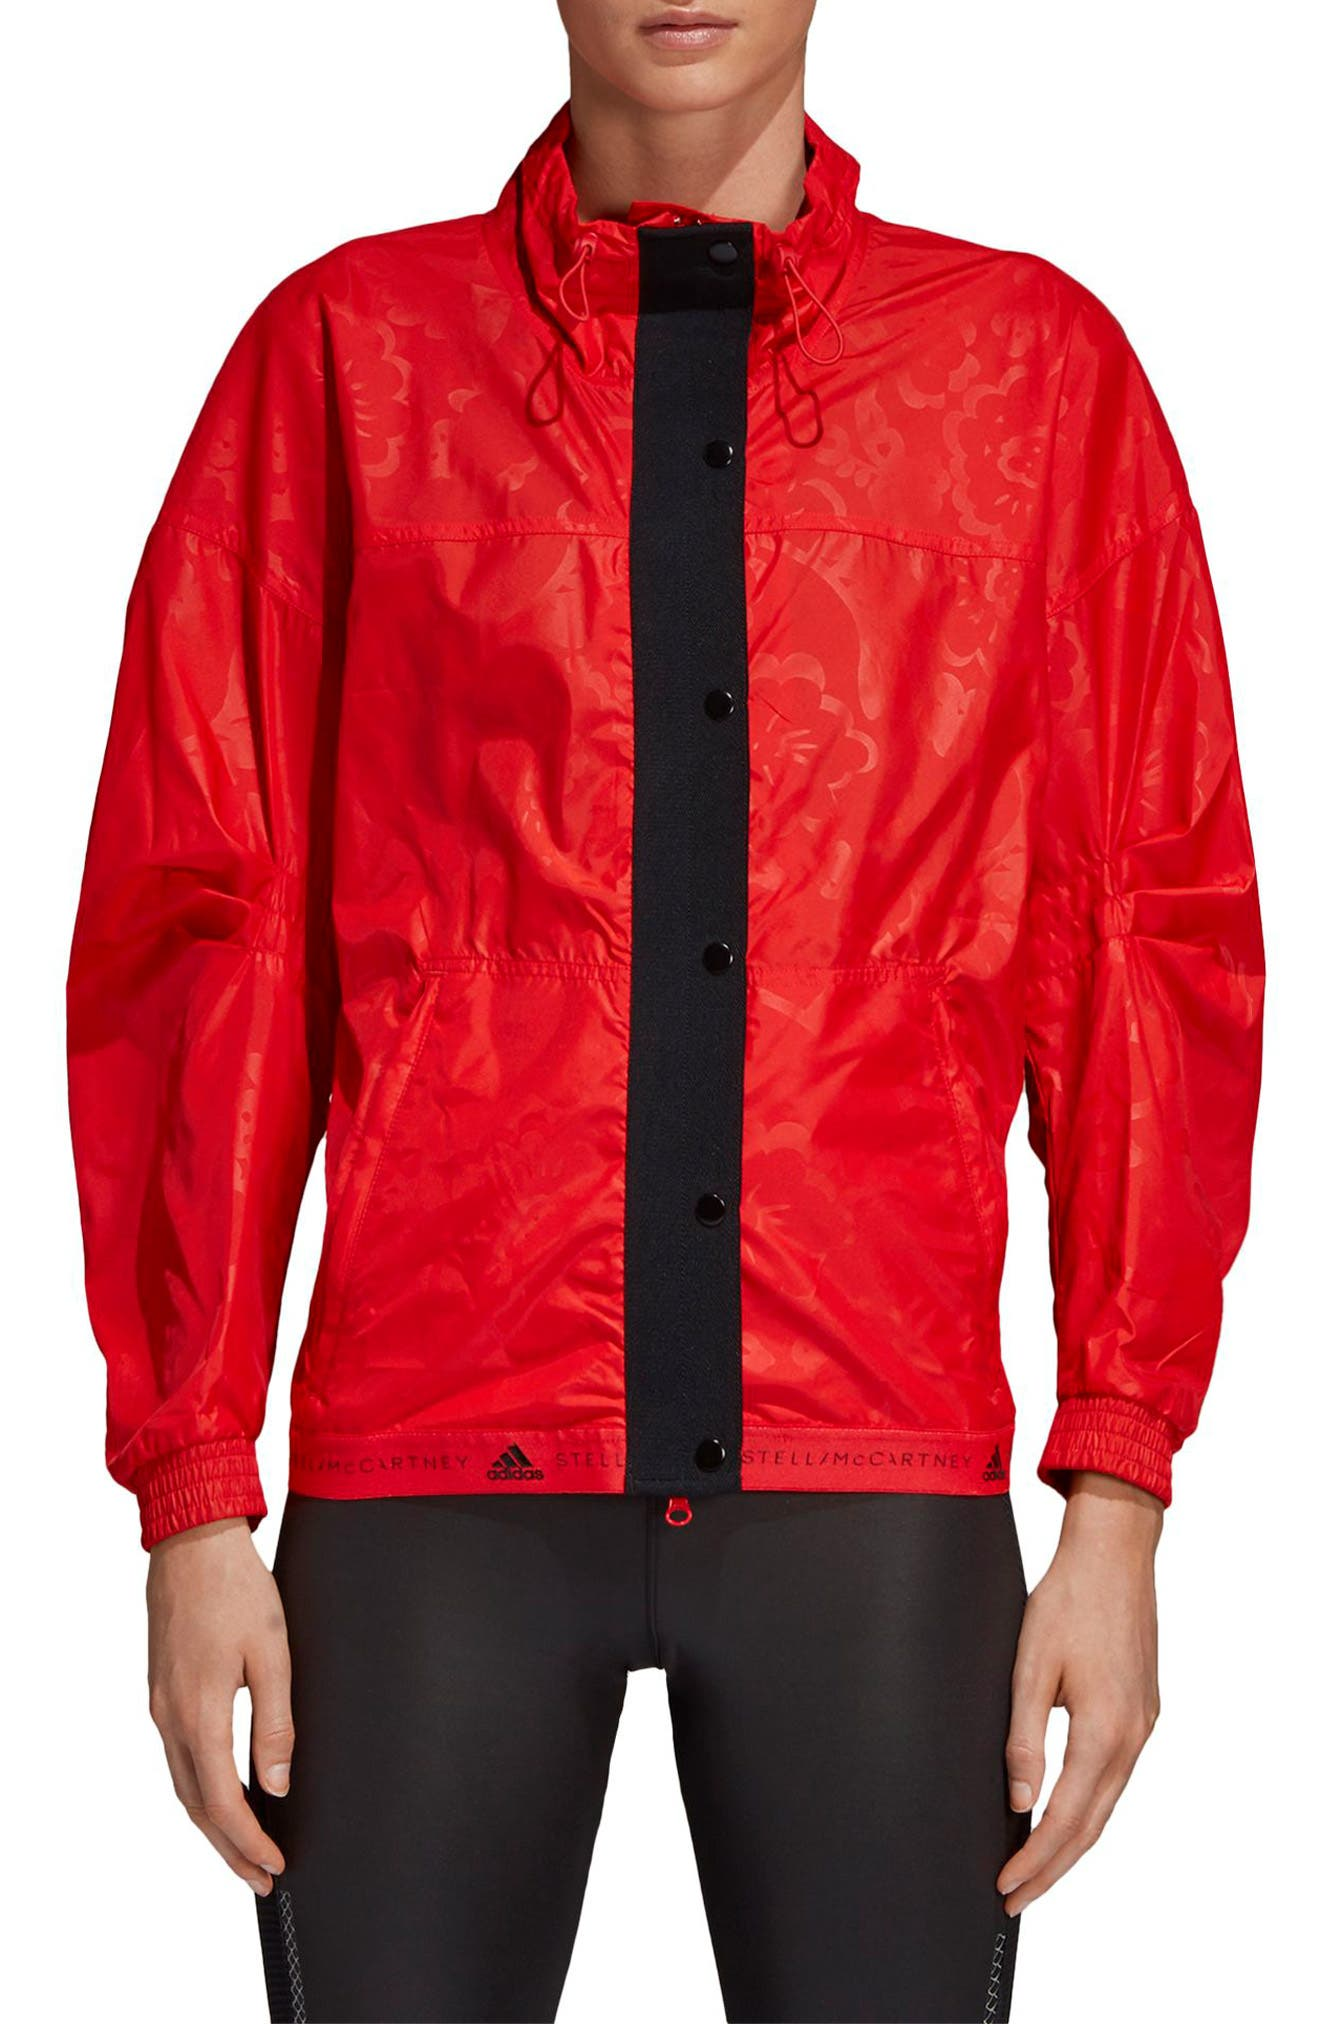 Run Wind Jacket,                         Main,                         color, CORRED